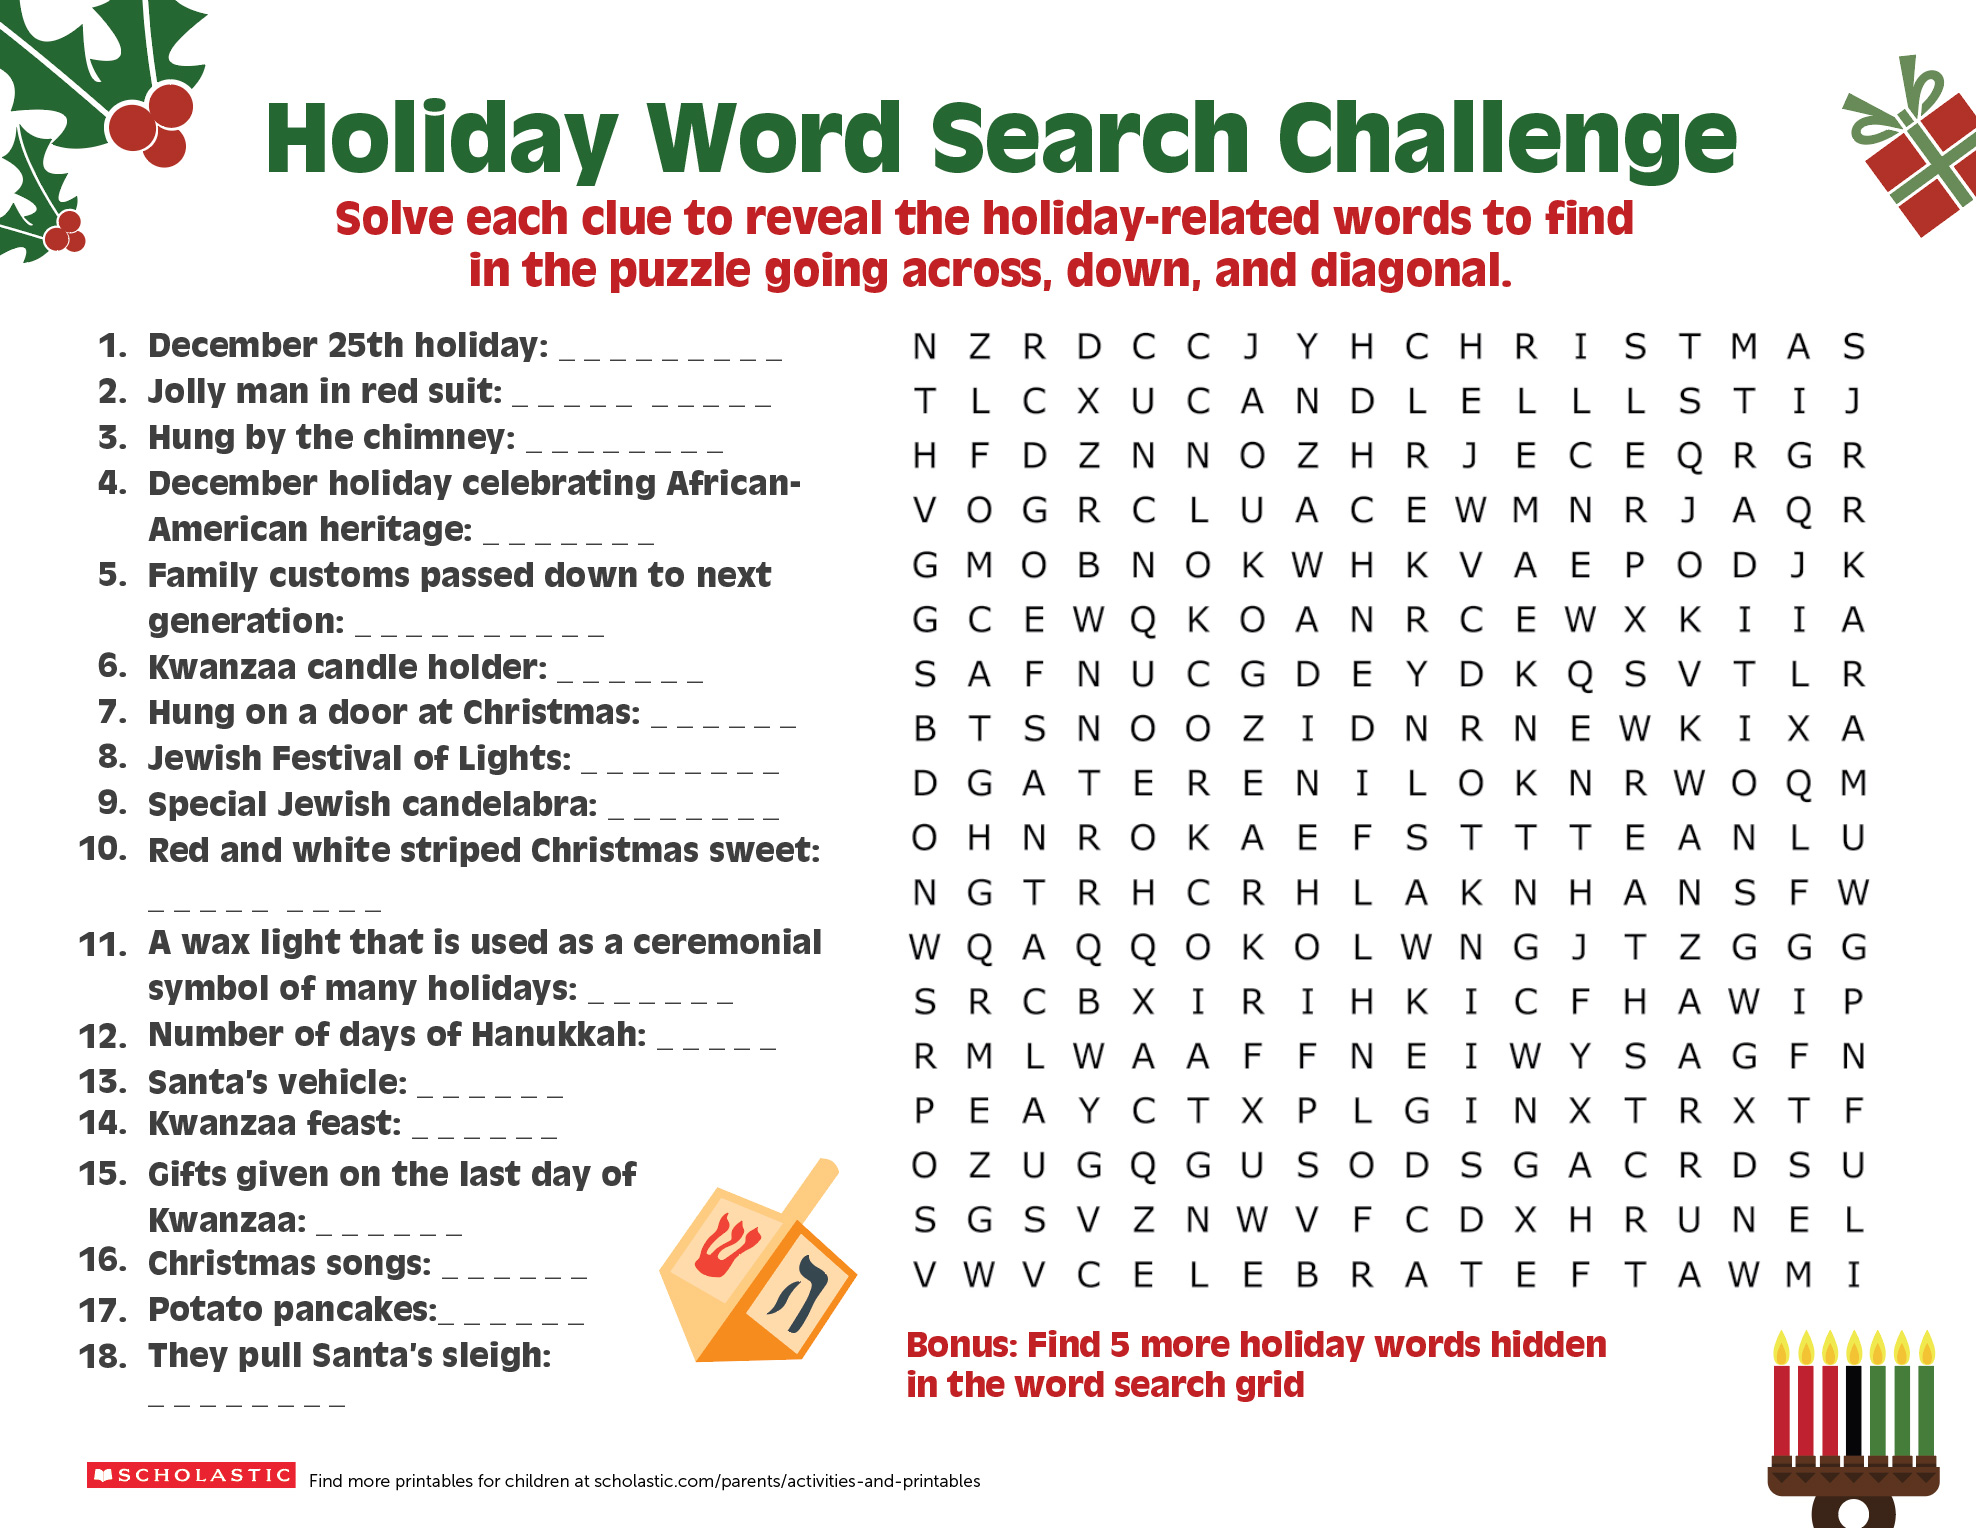 A Happy Holiday Word Search